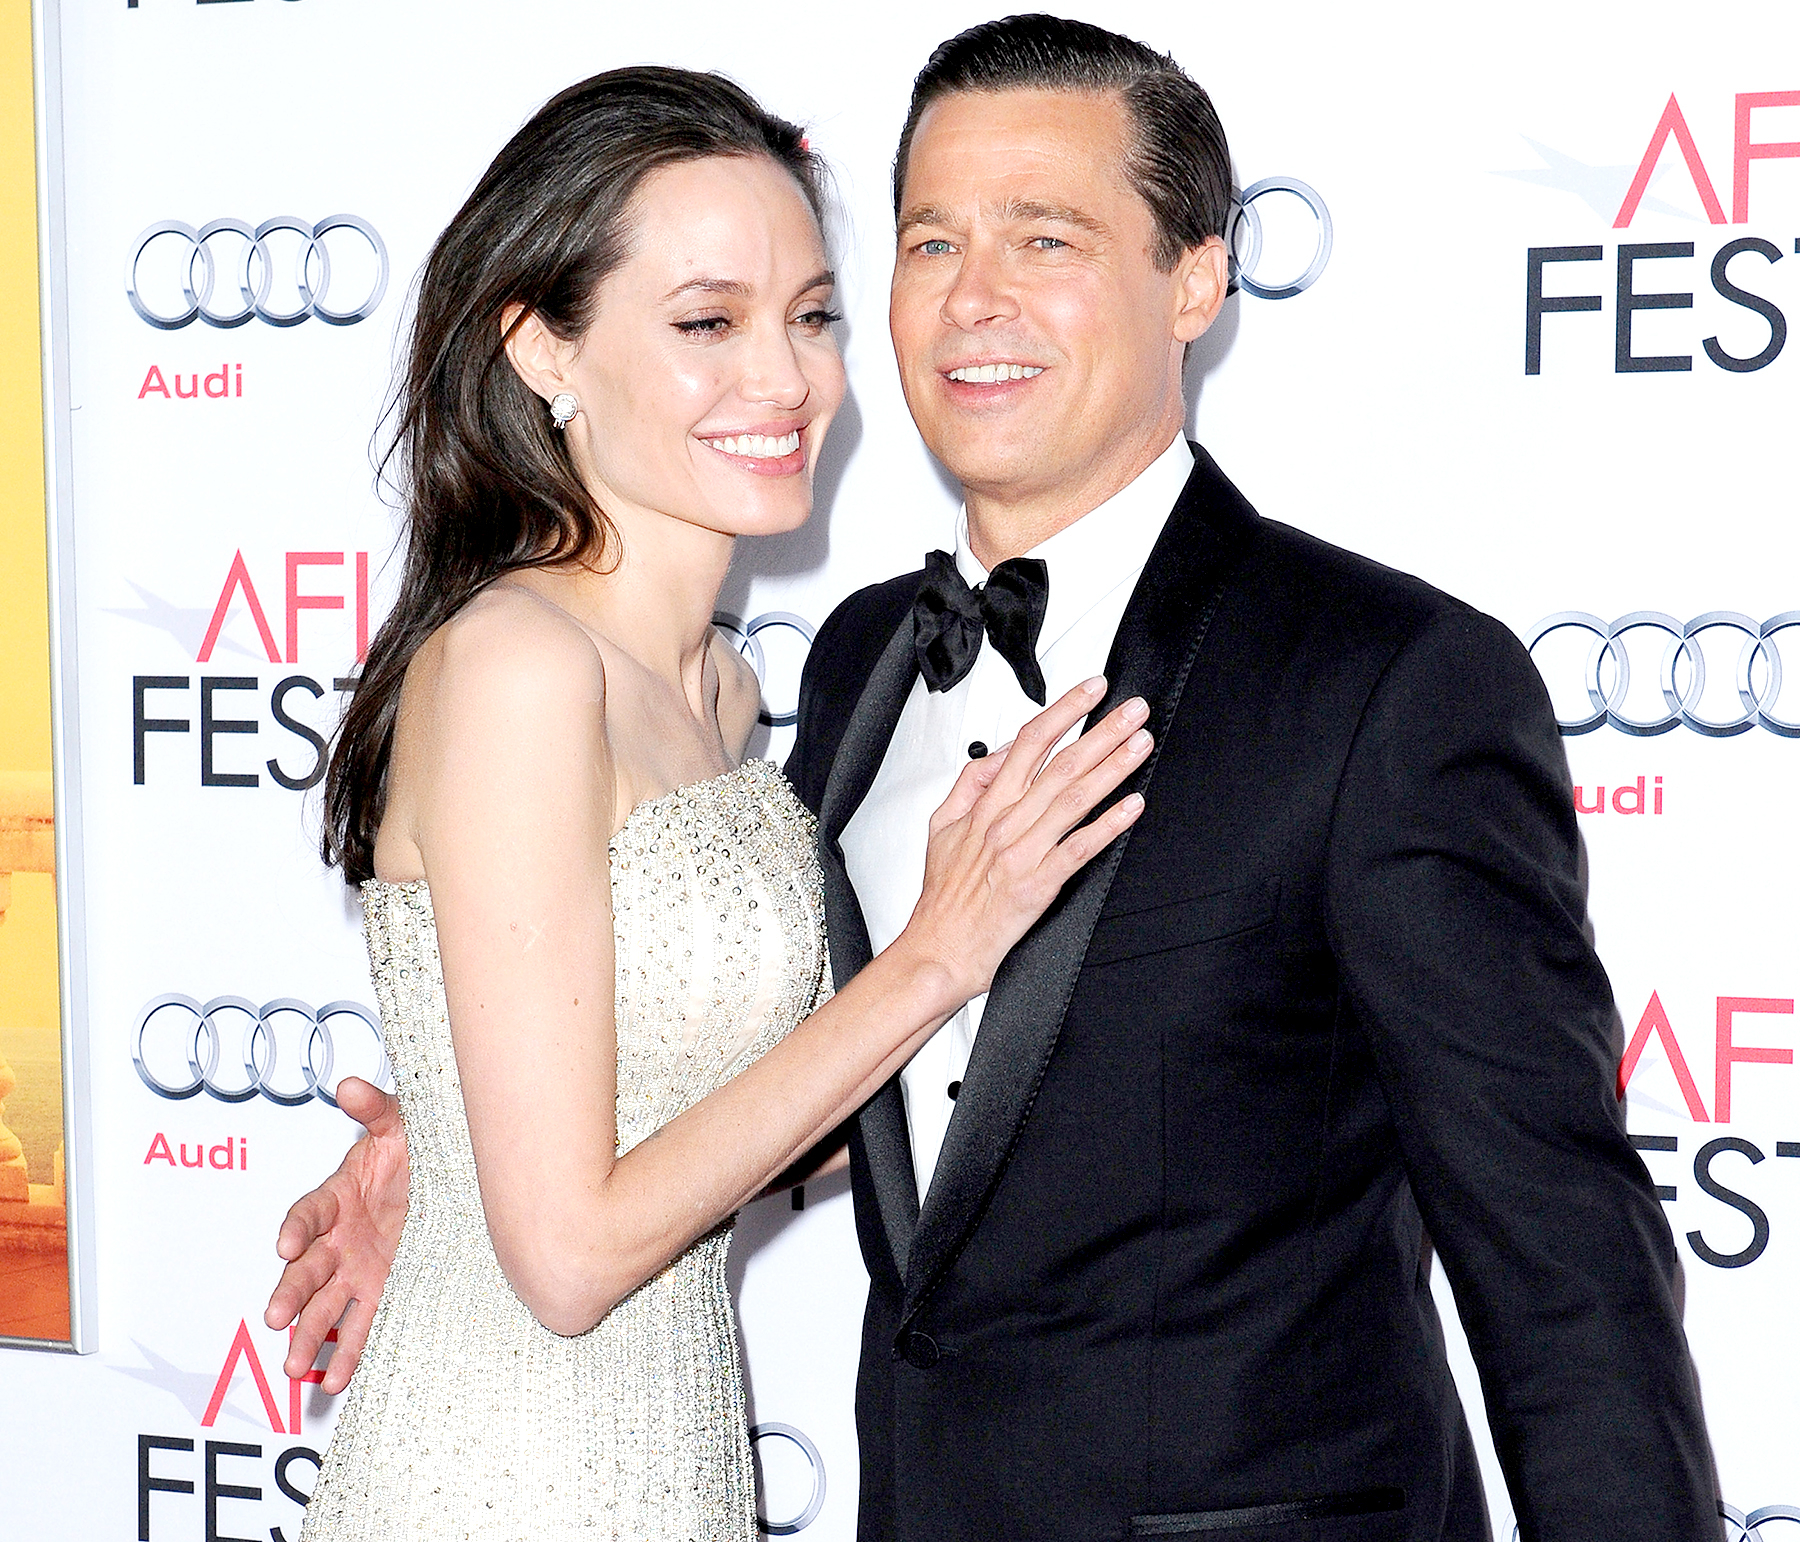 Angelina Jolie and Brad Pitt arrive at the AFI FEST 2015 presented by Audi Opening Night Gala Premiere of Universal Pictures' 'By The Sea' at TCL Chinese 6 Theatres on November 5, 2015 in Hollywood, California.